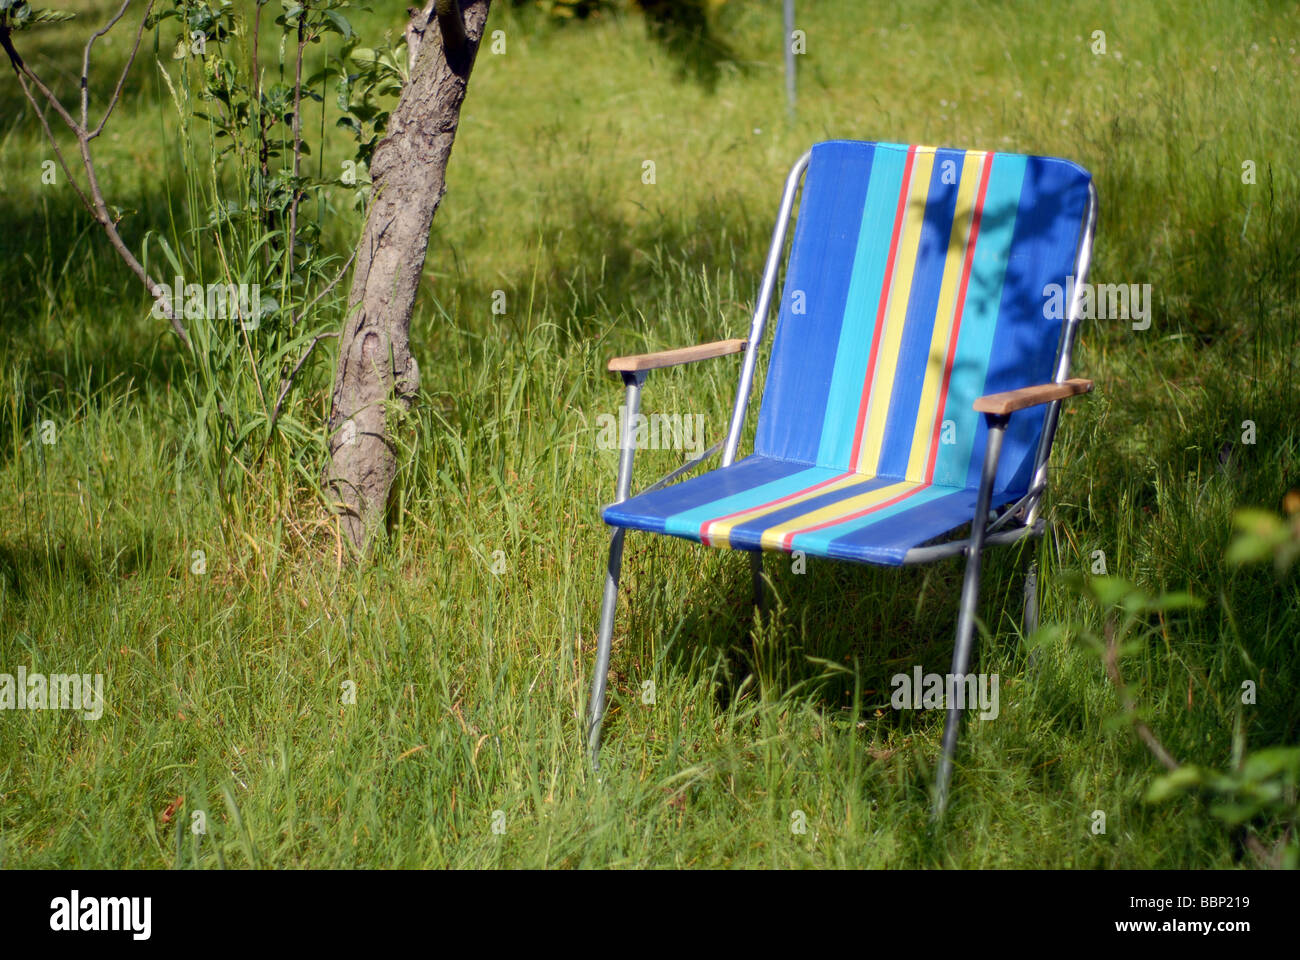 A retro 1970's deck chair on an overgrown lawn in summer - Stock Image